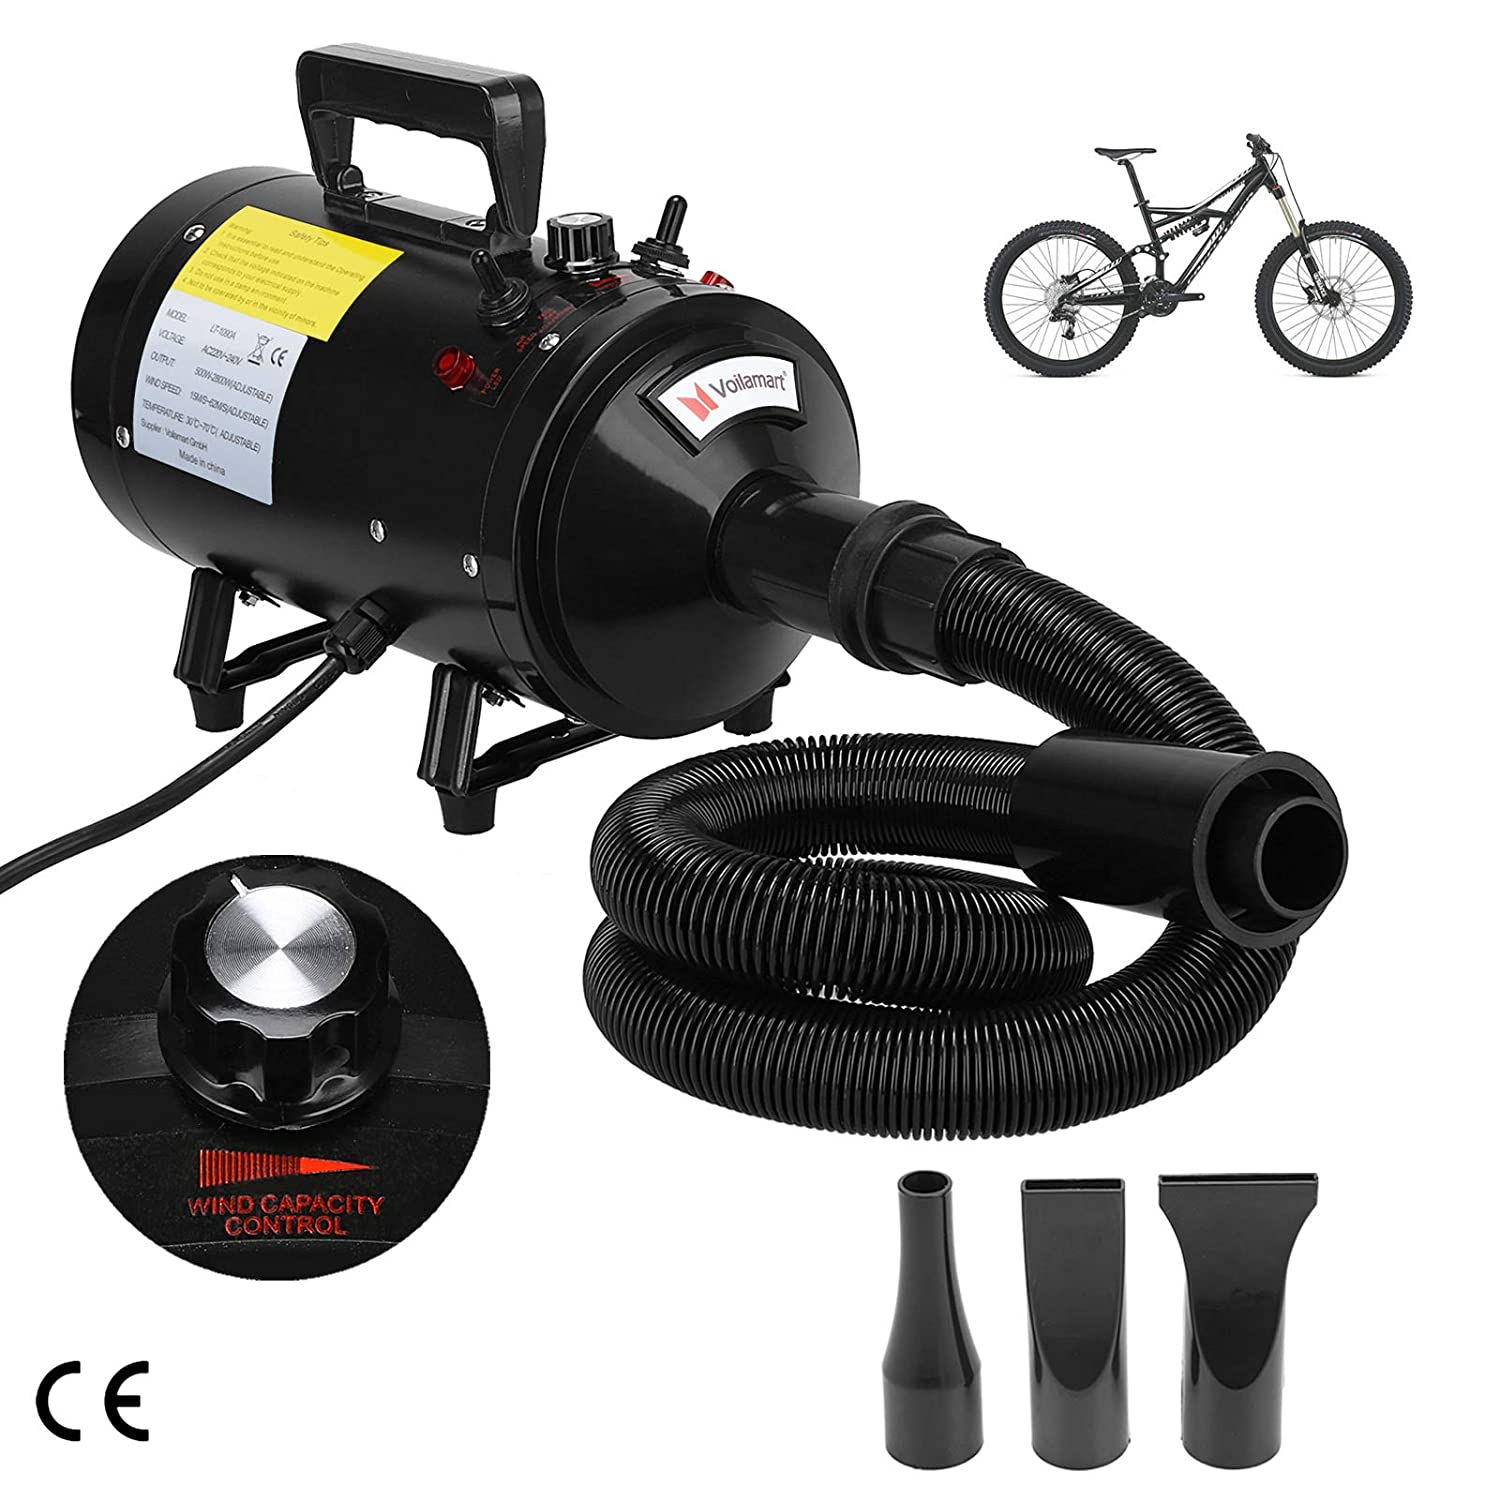 Pet Dryer 2800W Bike Dryer Turbo Blaster Variable Temperature and Speed Low Noise Portable Car Motorcycle Metro Air Dryer Voilamart Motorbike Dryer Blower 3 Nozzles Black